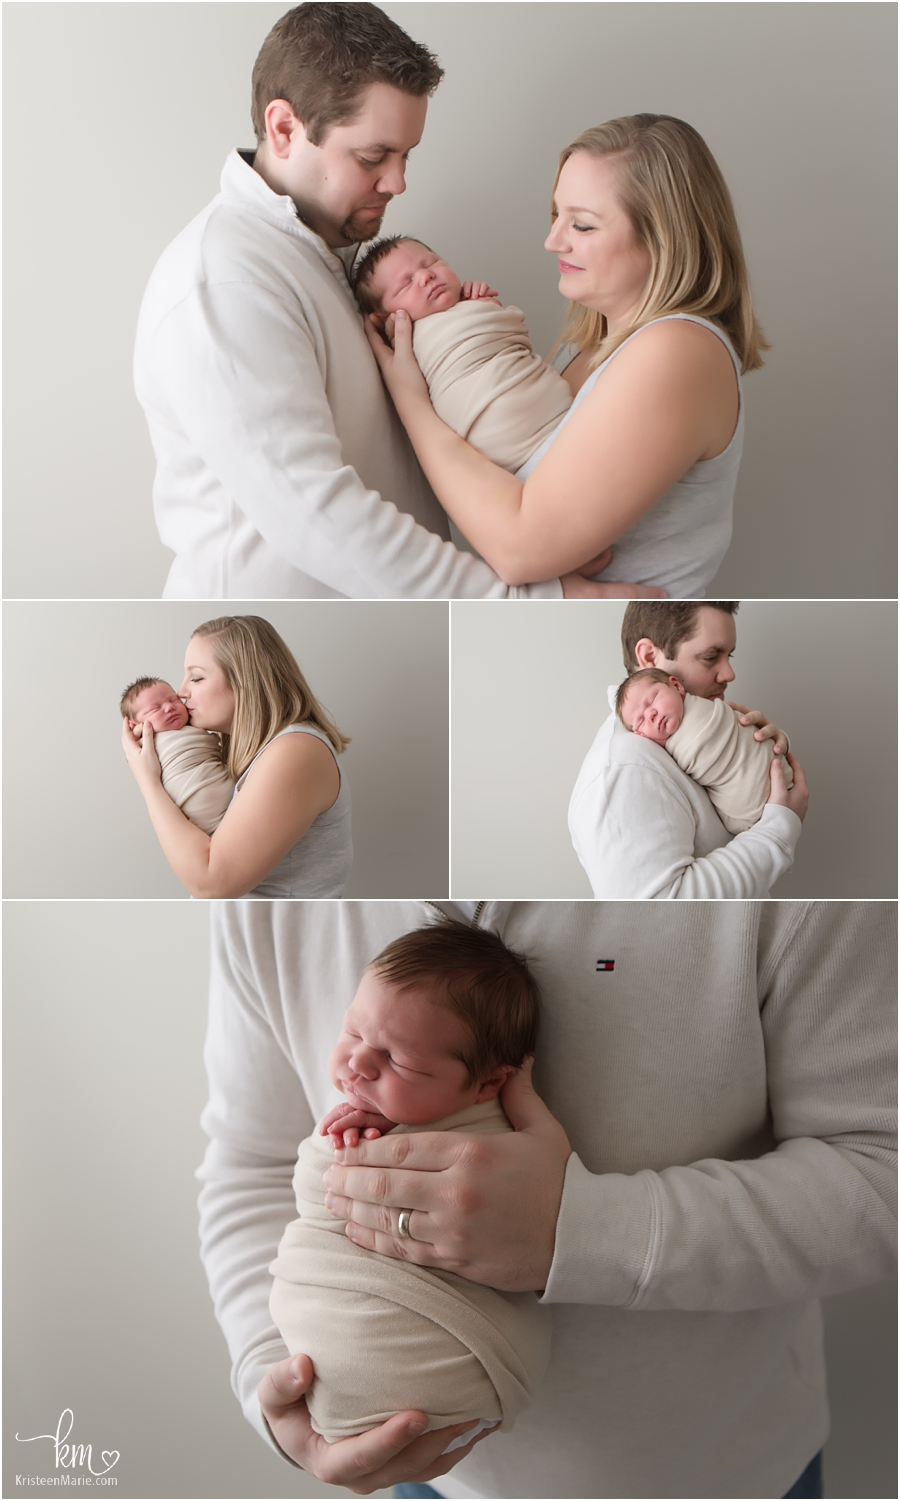 mom and dad from Indianapolis with newborn baby boy - parent and baby poses